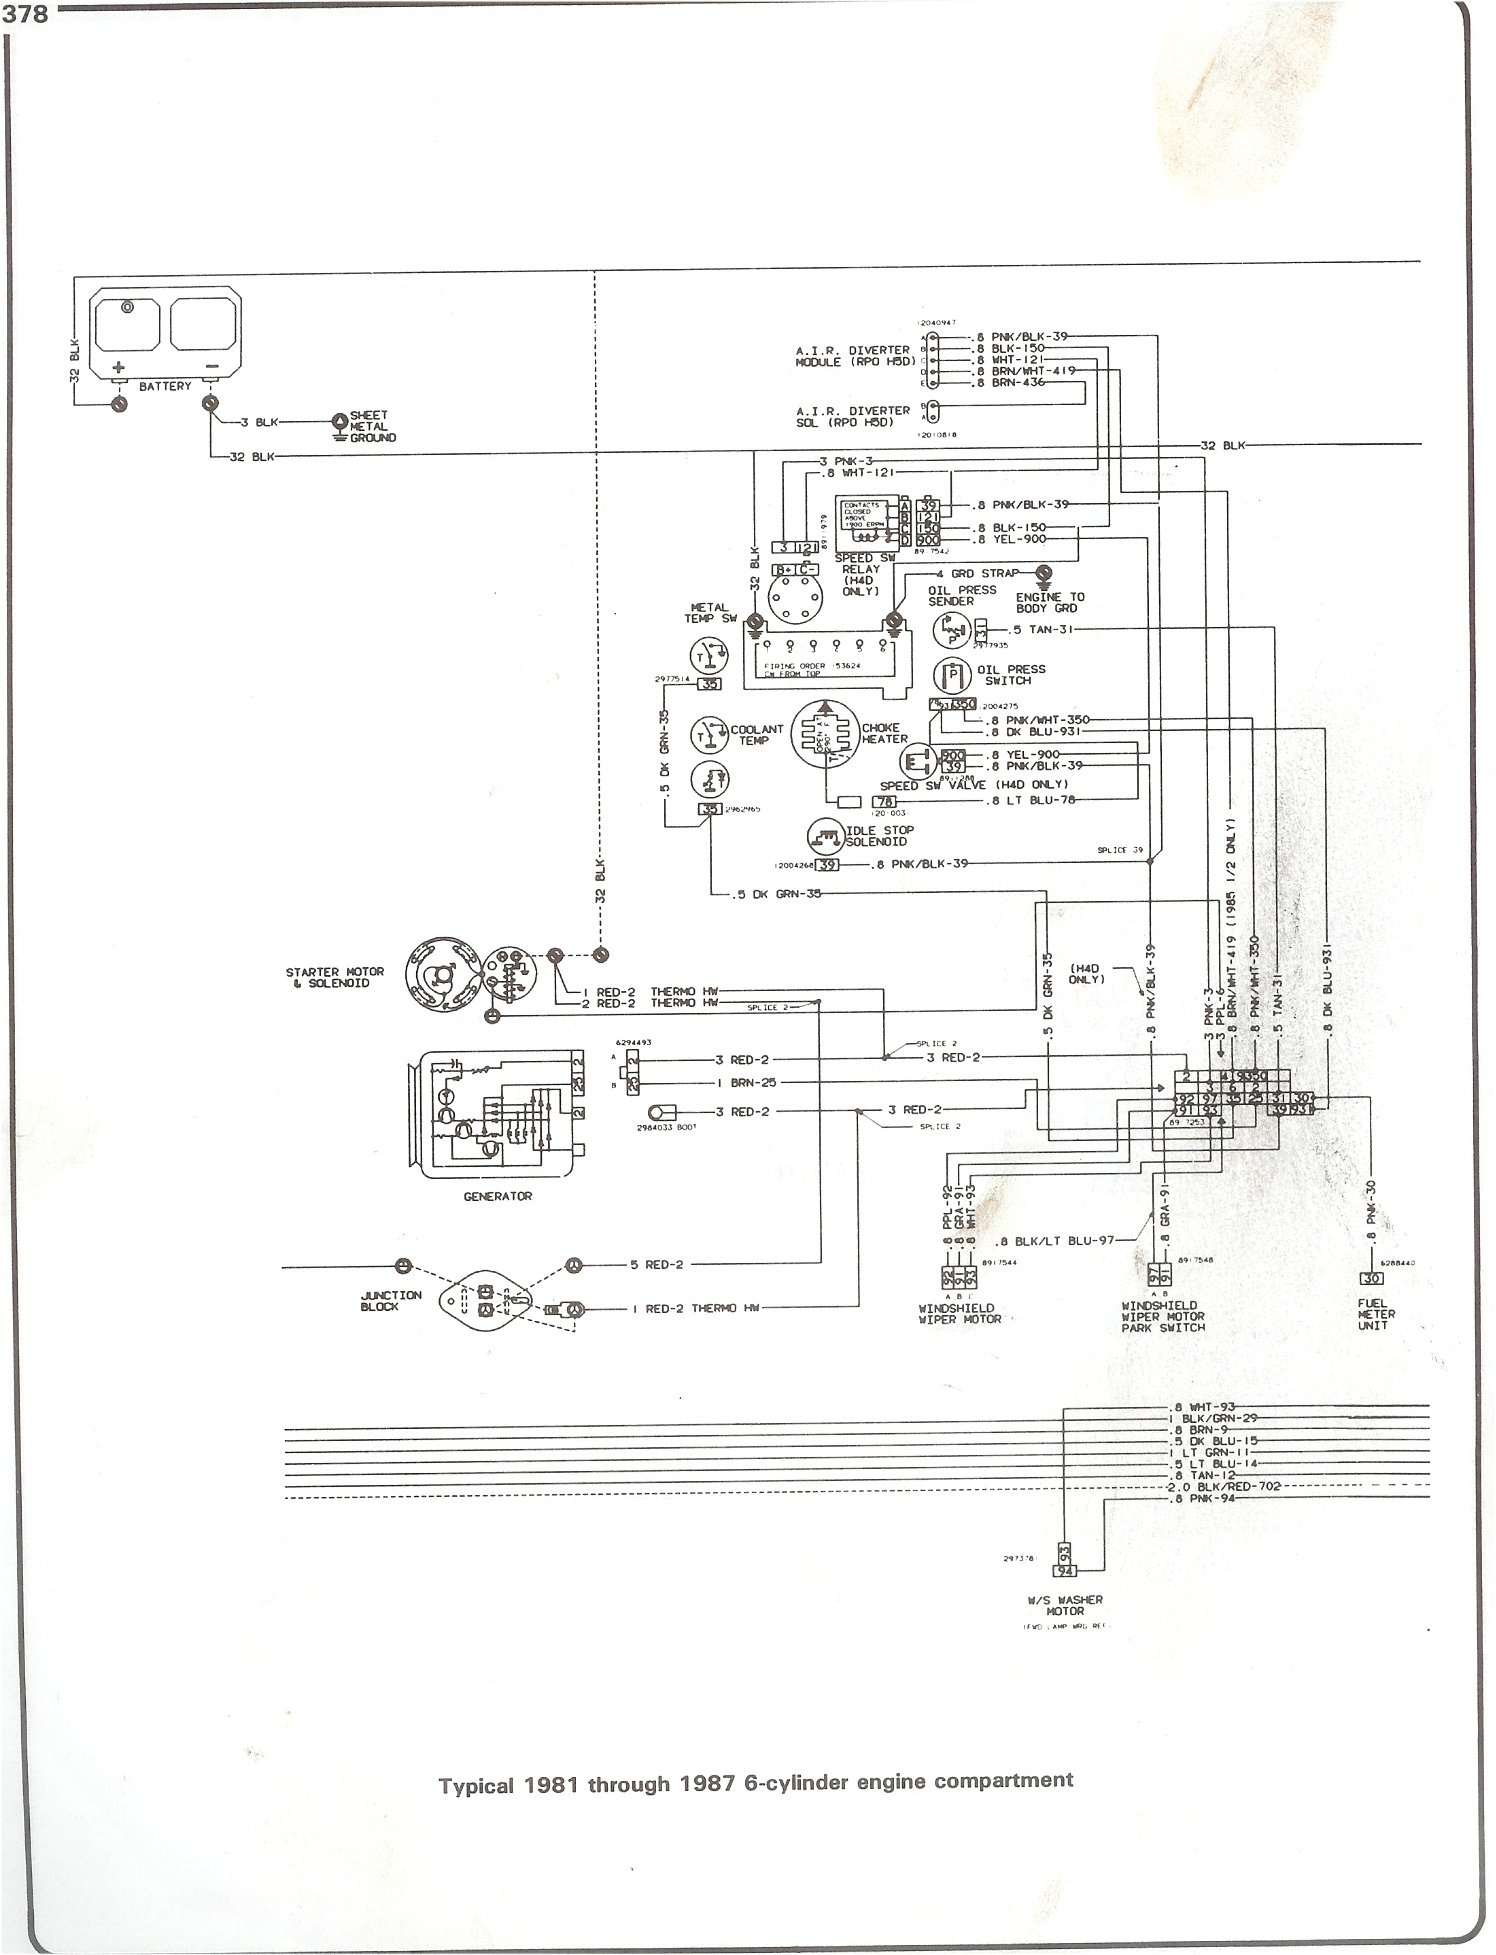 1973 C10 Fuse Box Wiring Library 1006 Sienna Engine Diagram 1969 Corvette Dash On Camaro Gmc Diagrams